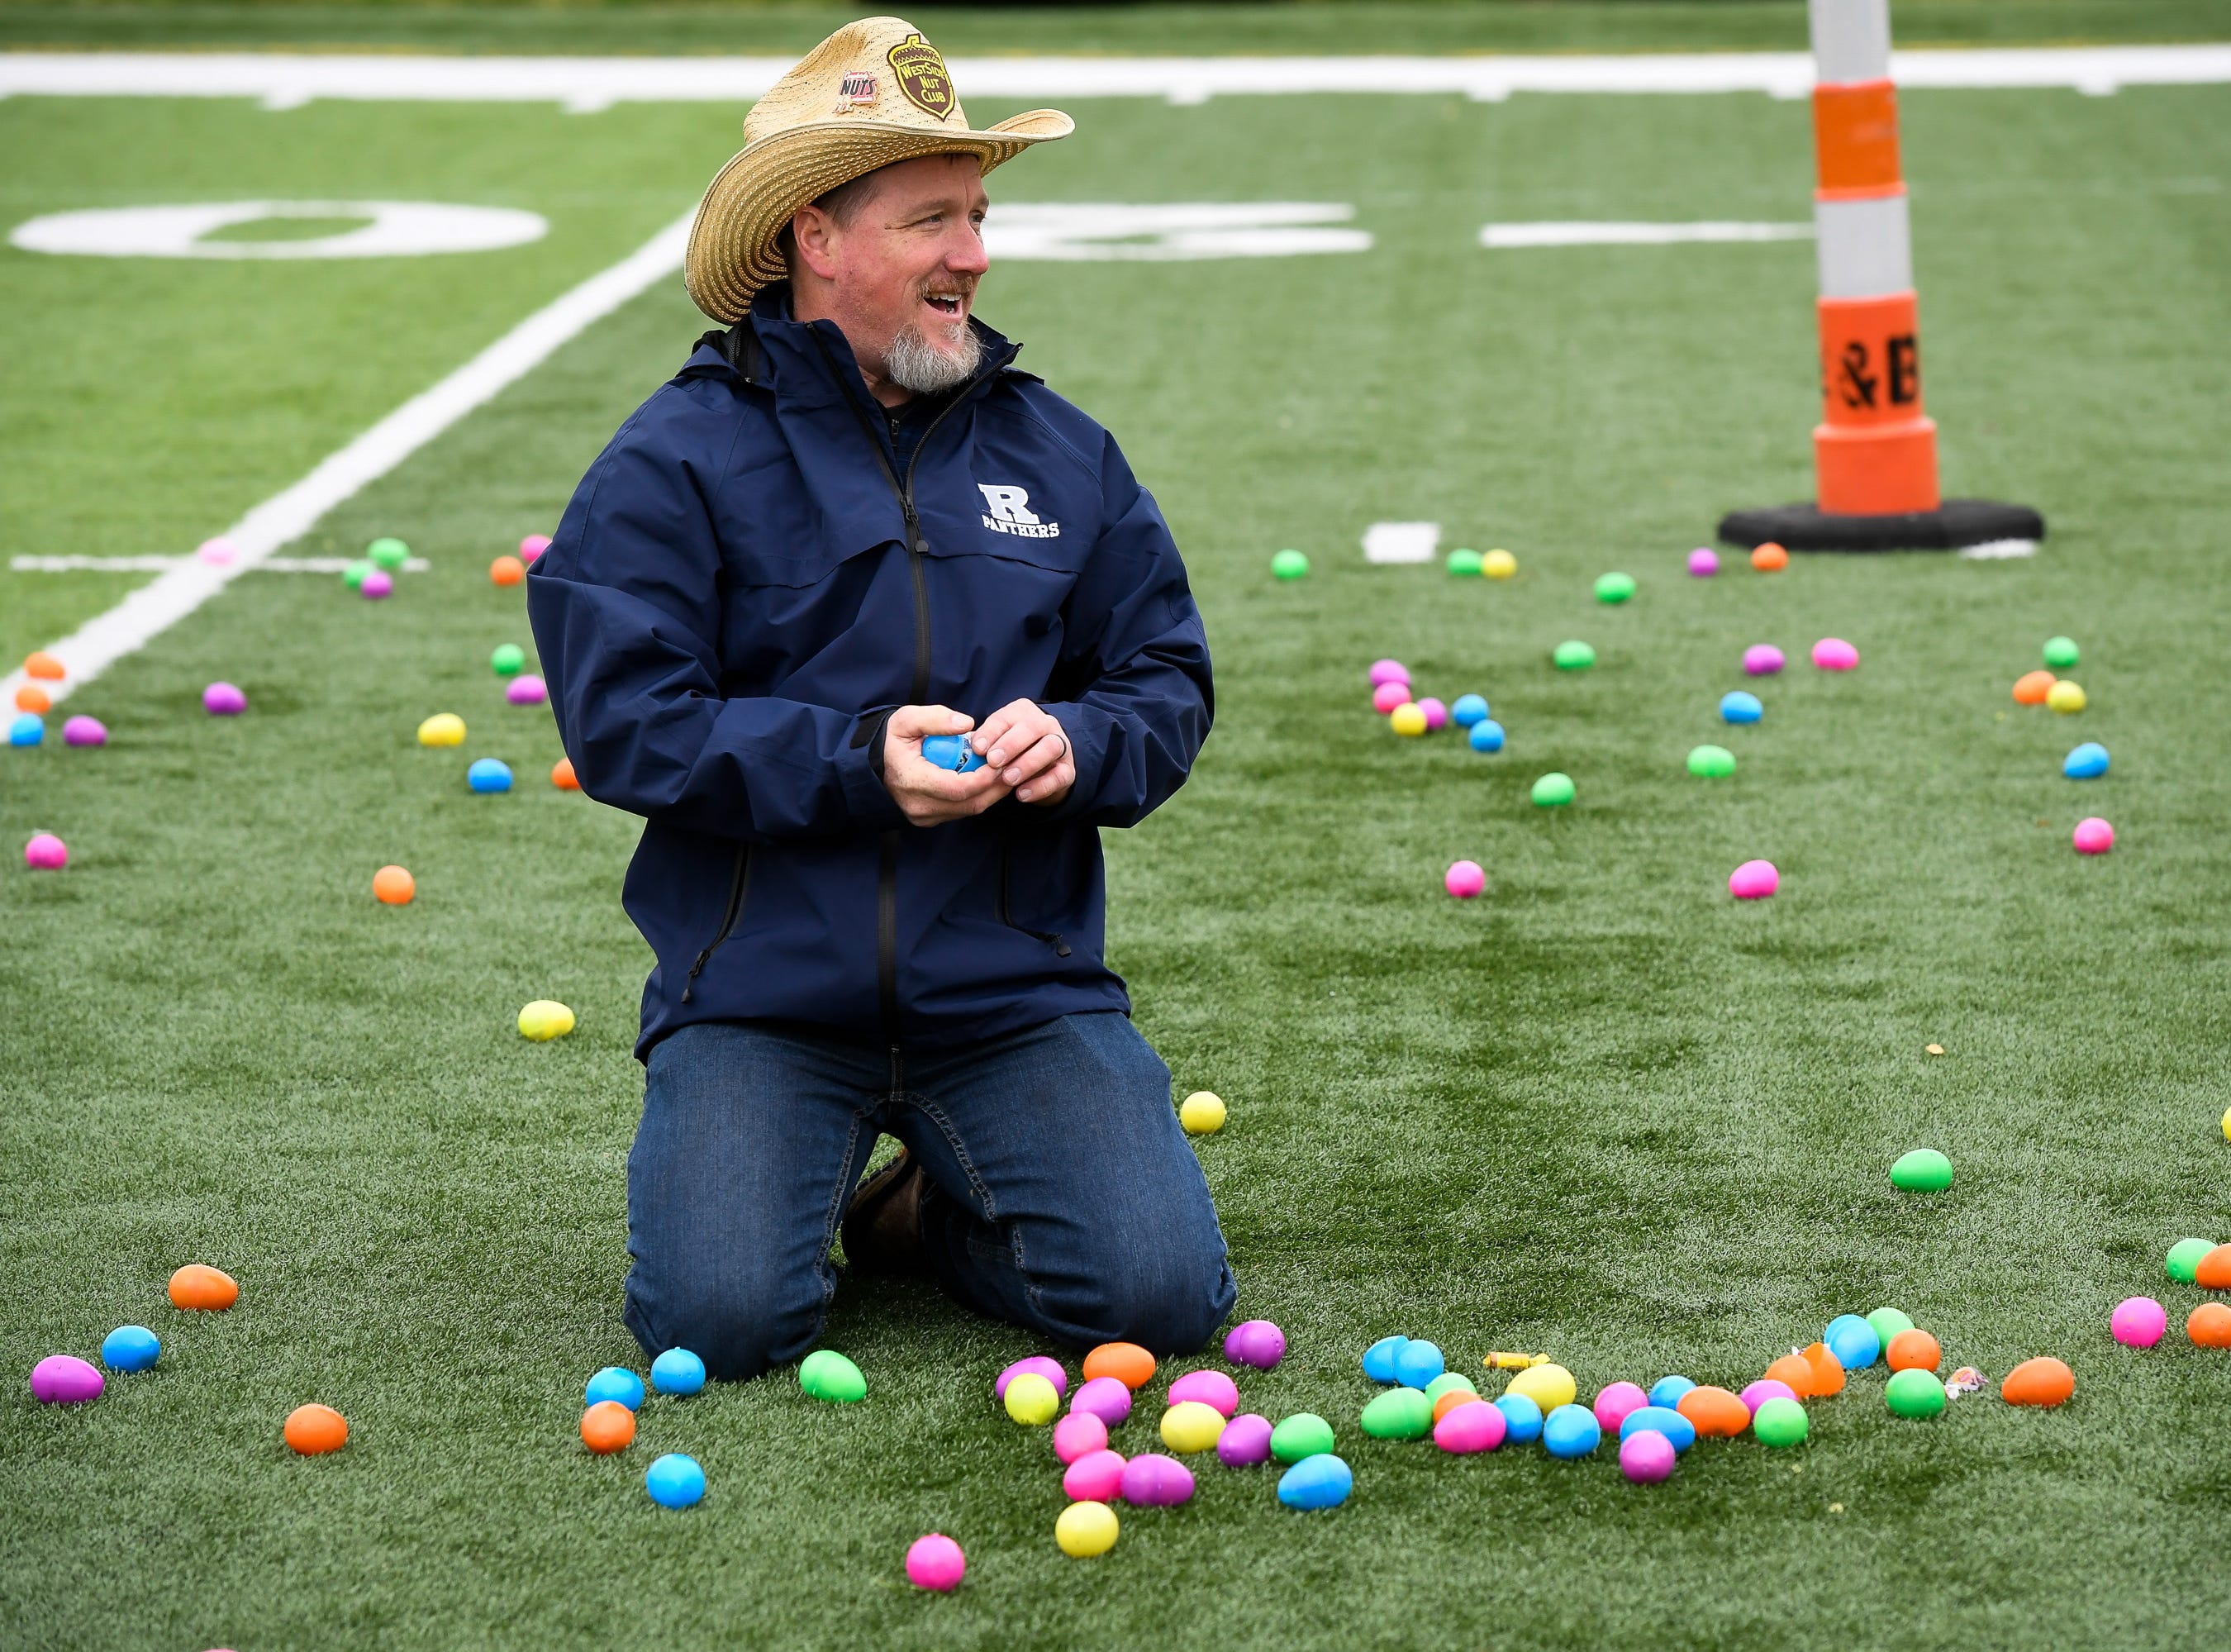 Chris Stewart spreads eggs out for the 72nd annual West Side Nut Club Easter Egg Hunt held at Mater Dei High Saturday, April 20, 2019.